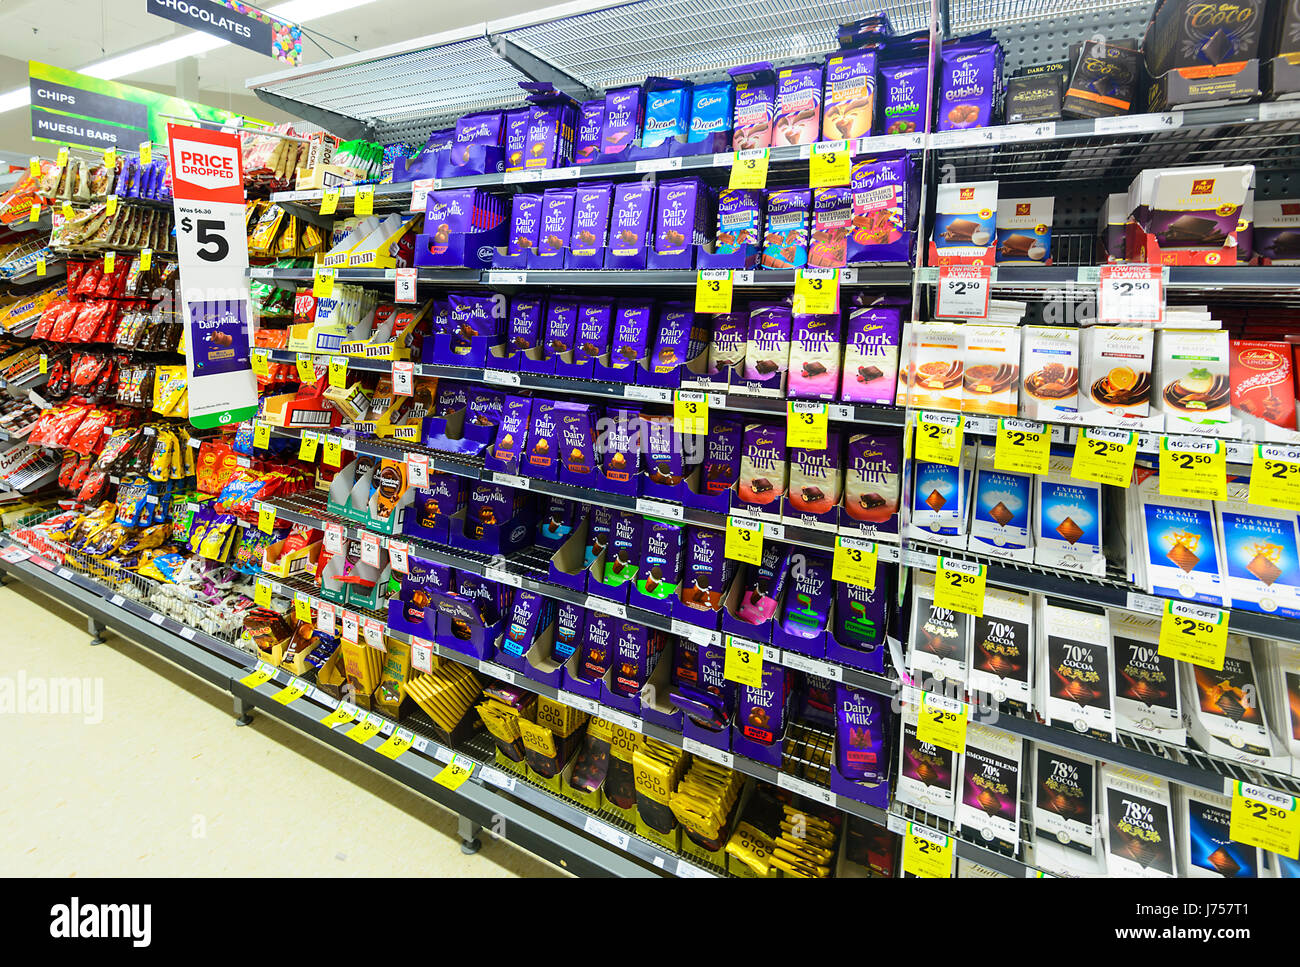 Shelves stacked up with Chocolates at Woolworths, Kiama, New South Wales, NSW, Australia - Stock Image